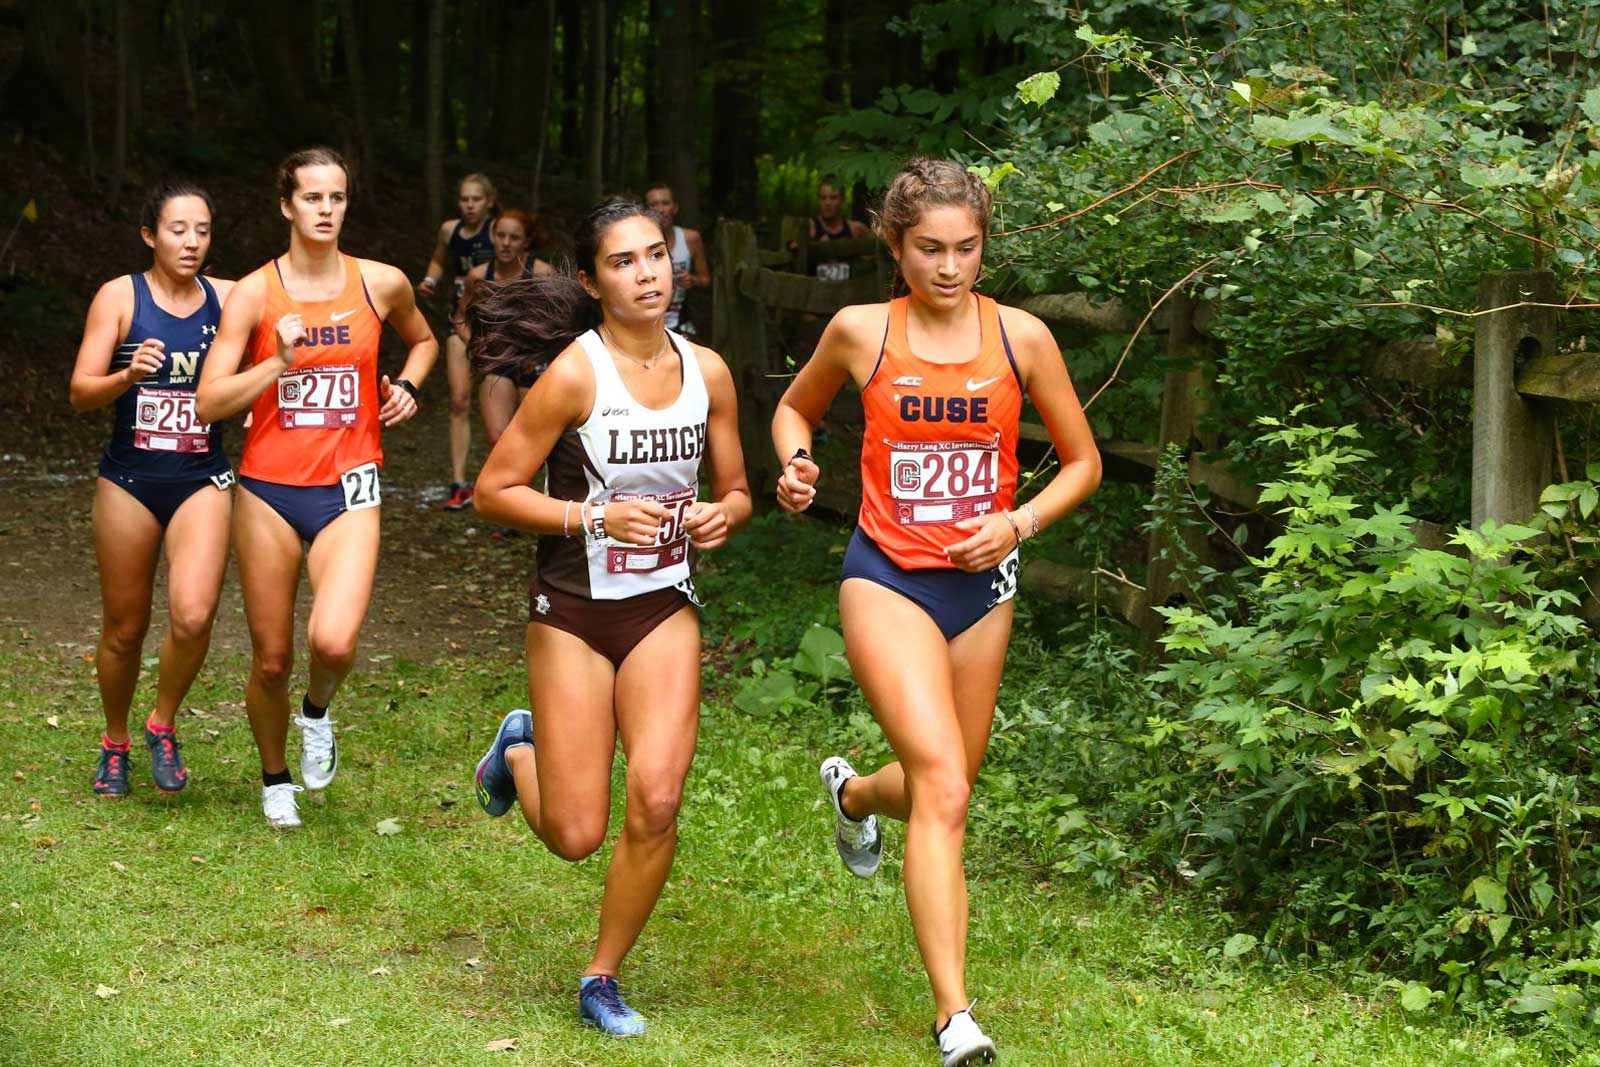 a group of female runners running out of a forest